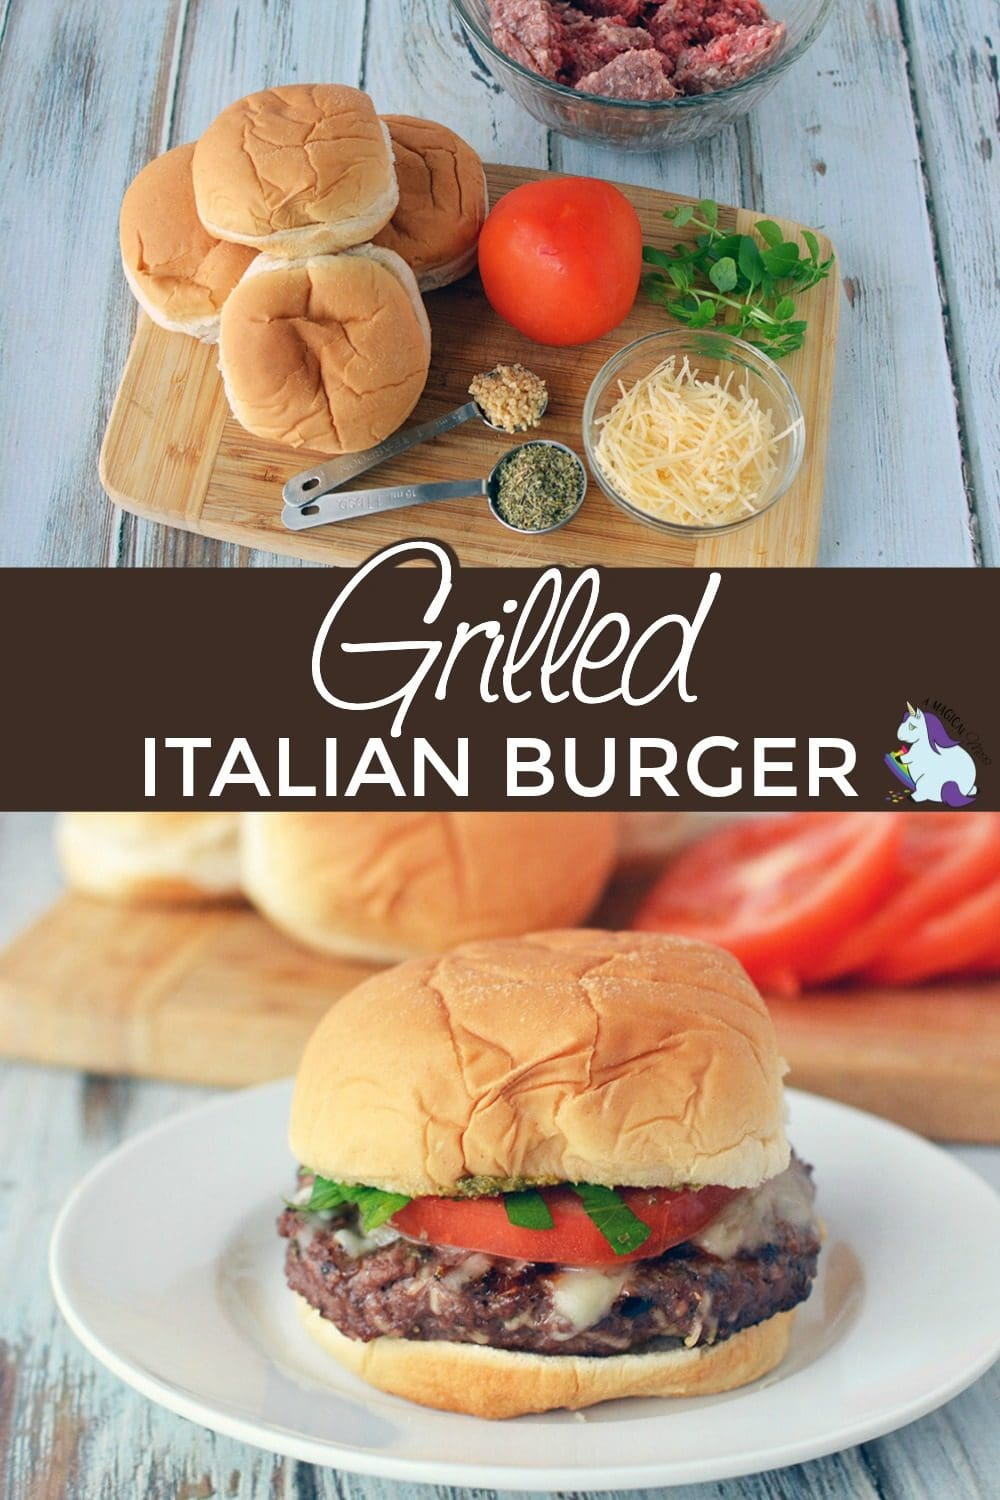 Burger ingredients and complete burger with toppings